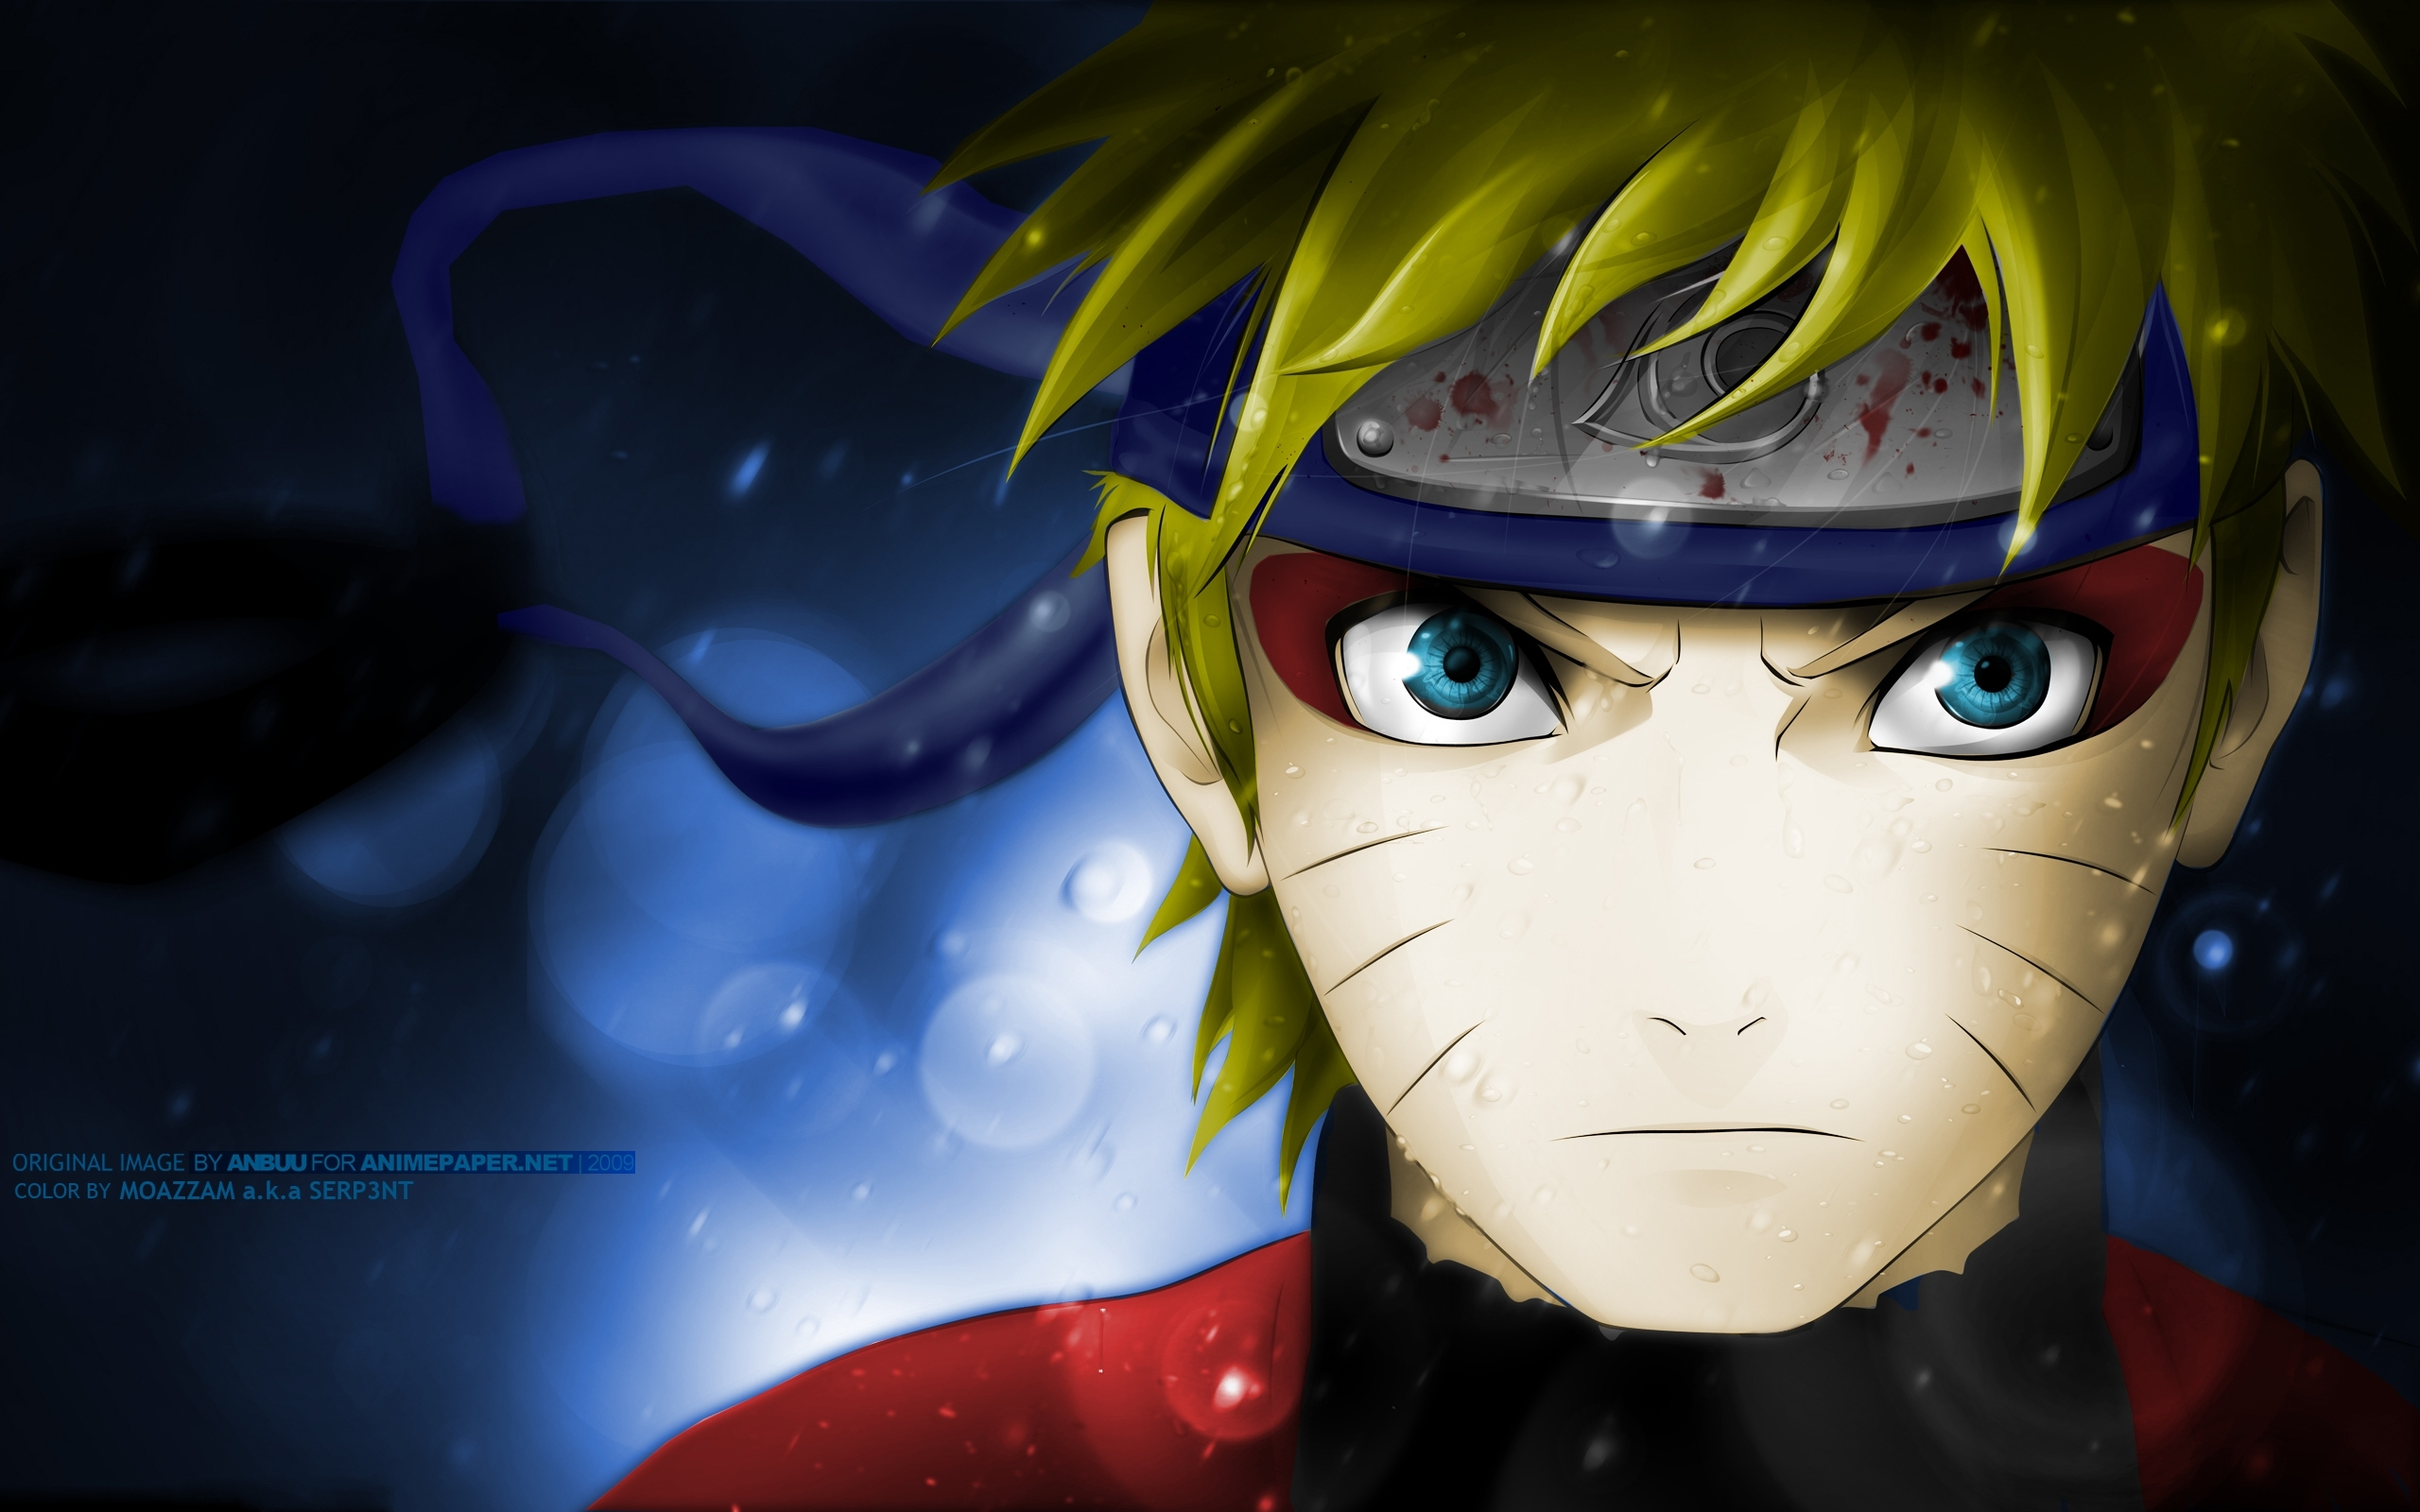 788 naruto uzumaki hd wallpapers | background images - wallpaper abyss